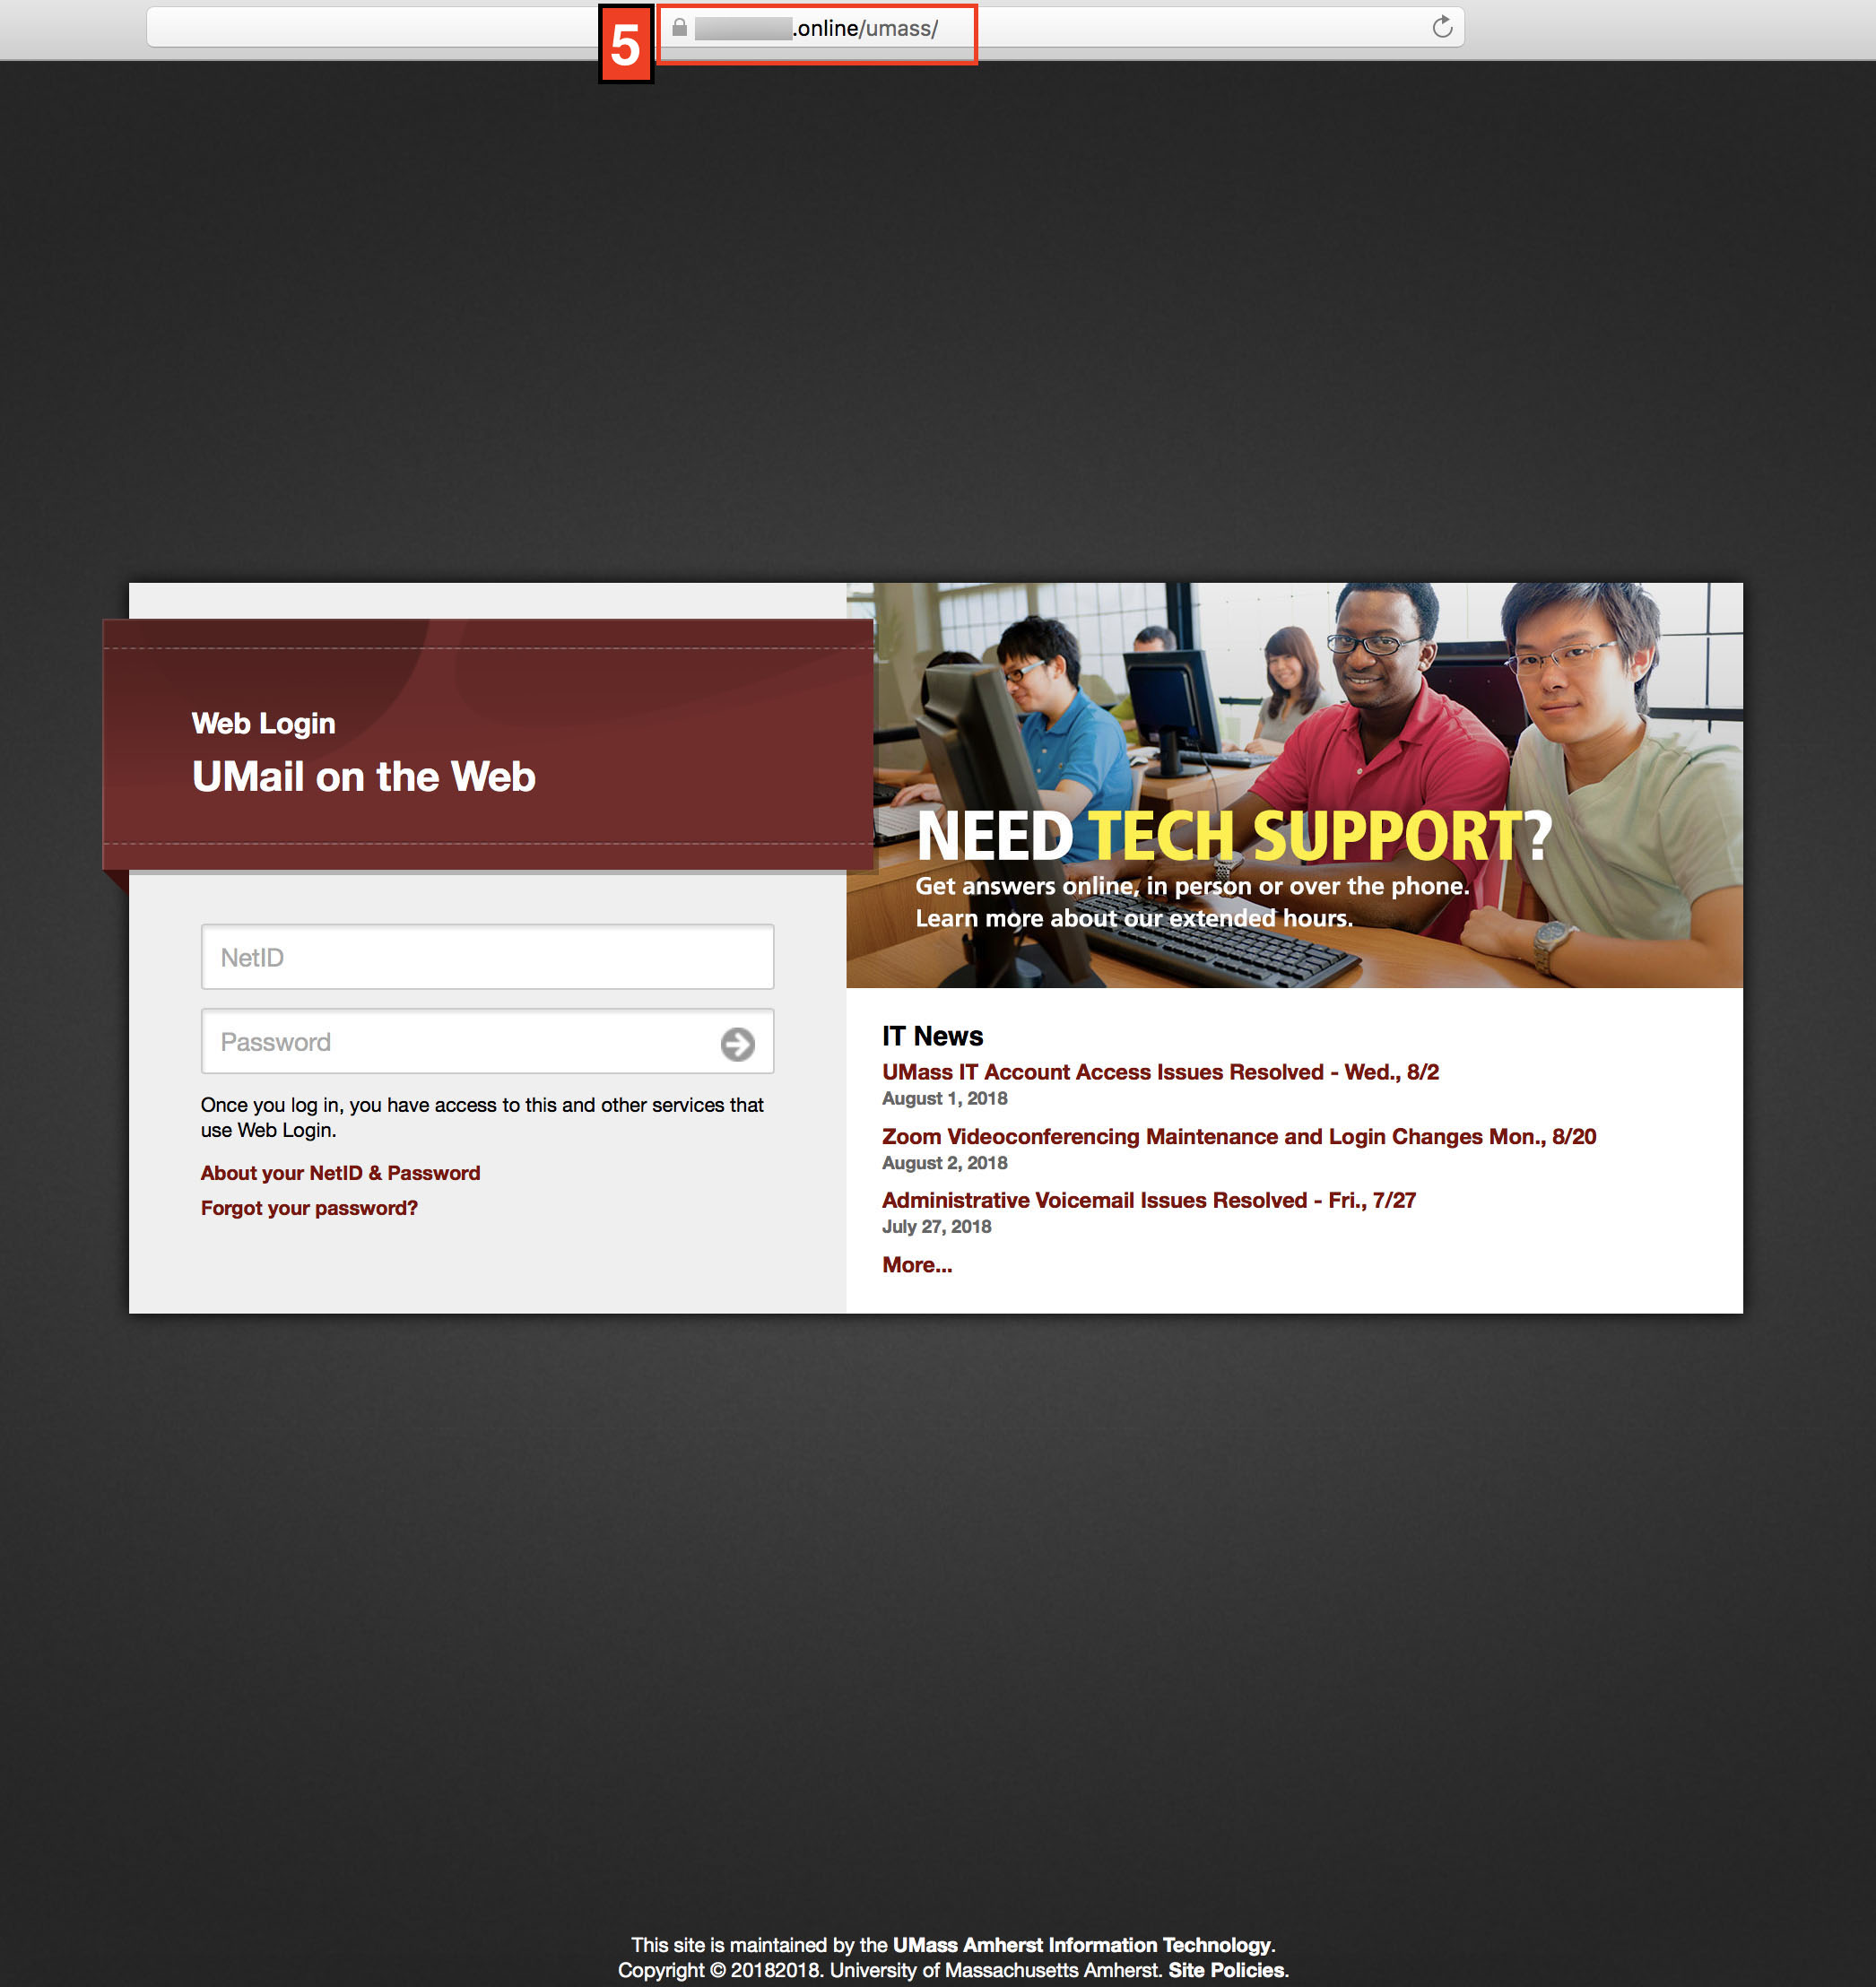 Fake umass login page using a '.online' address rather than '.edu'